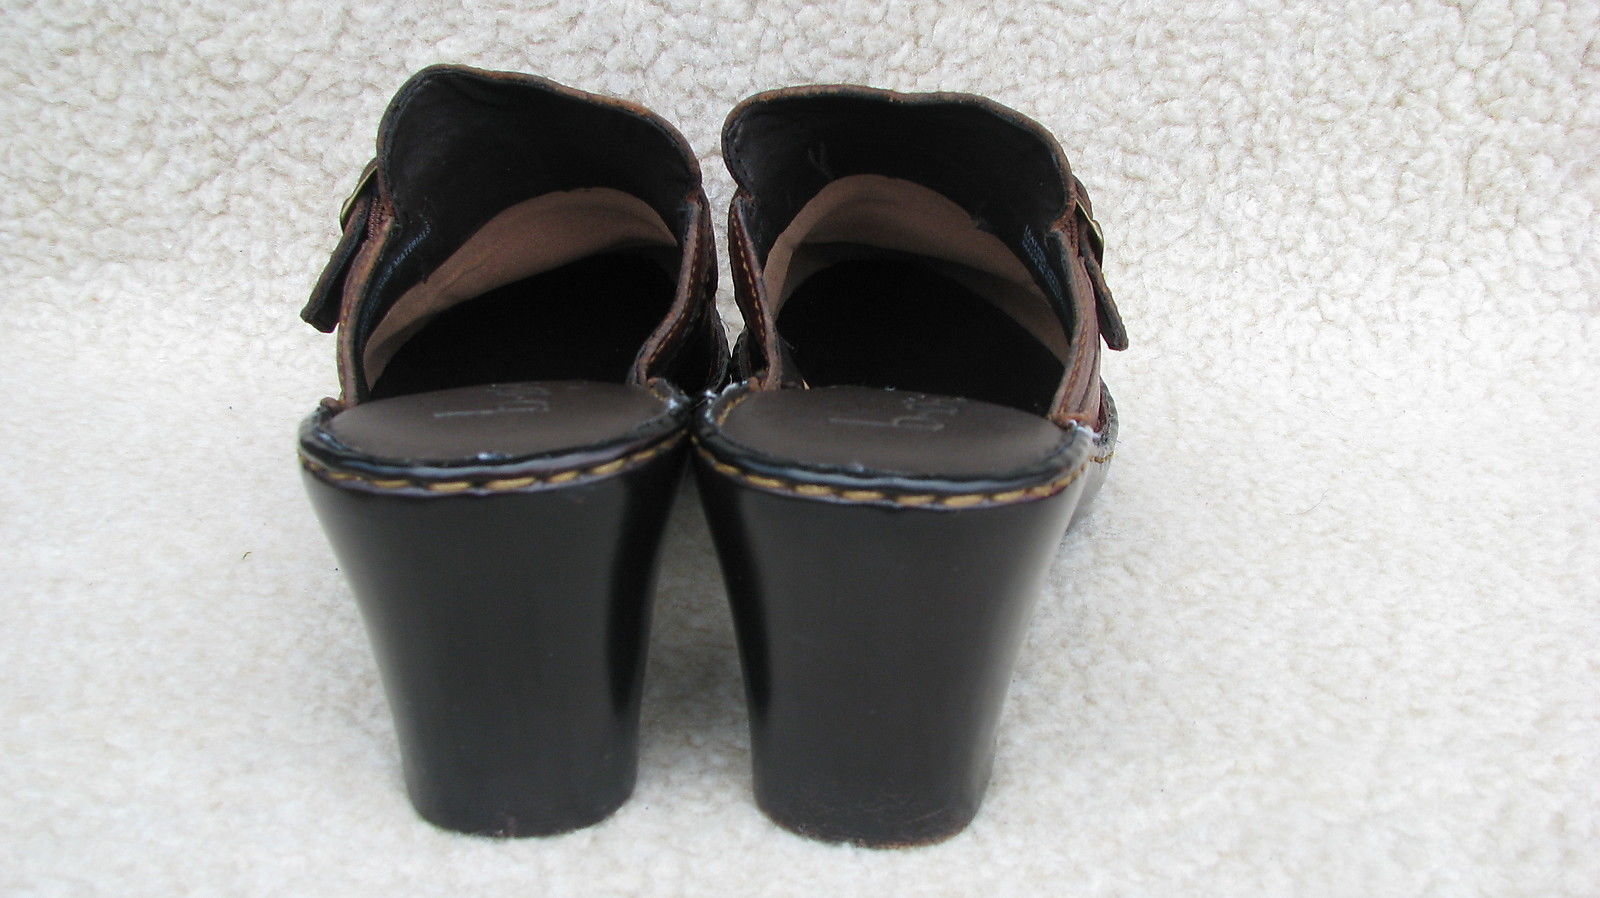 Born Concept Rich Brown Leather SHOES Woman's 9 / 40.5 MULES Buckle Accent HEELS